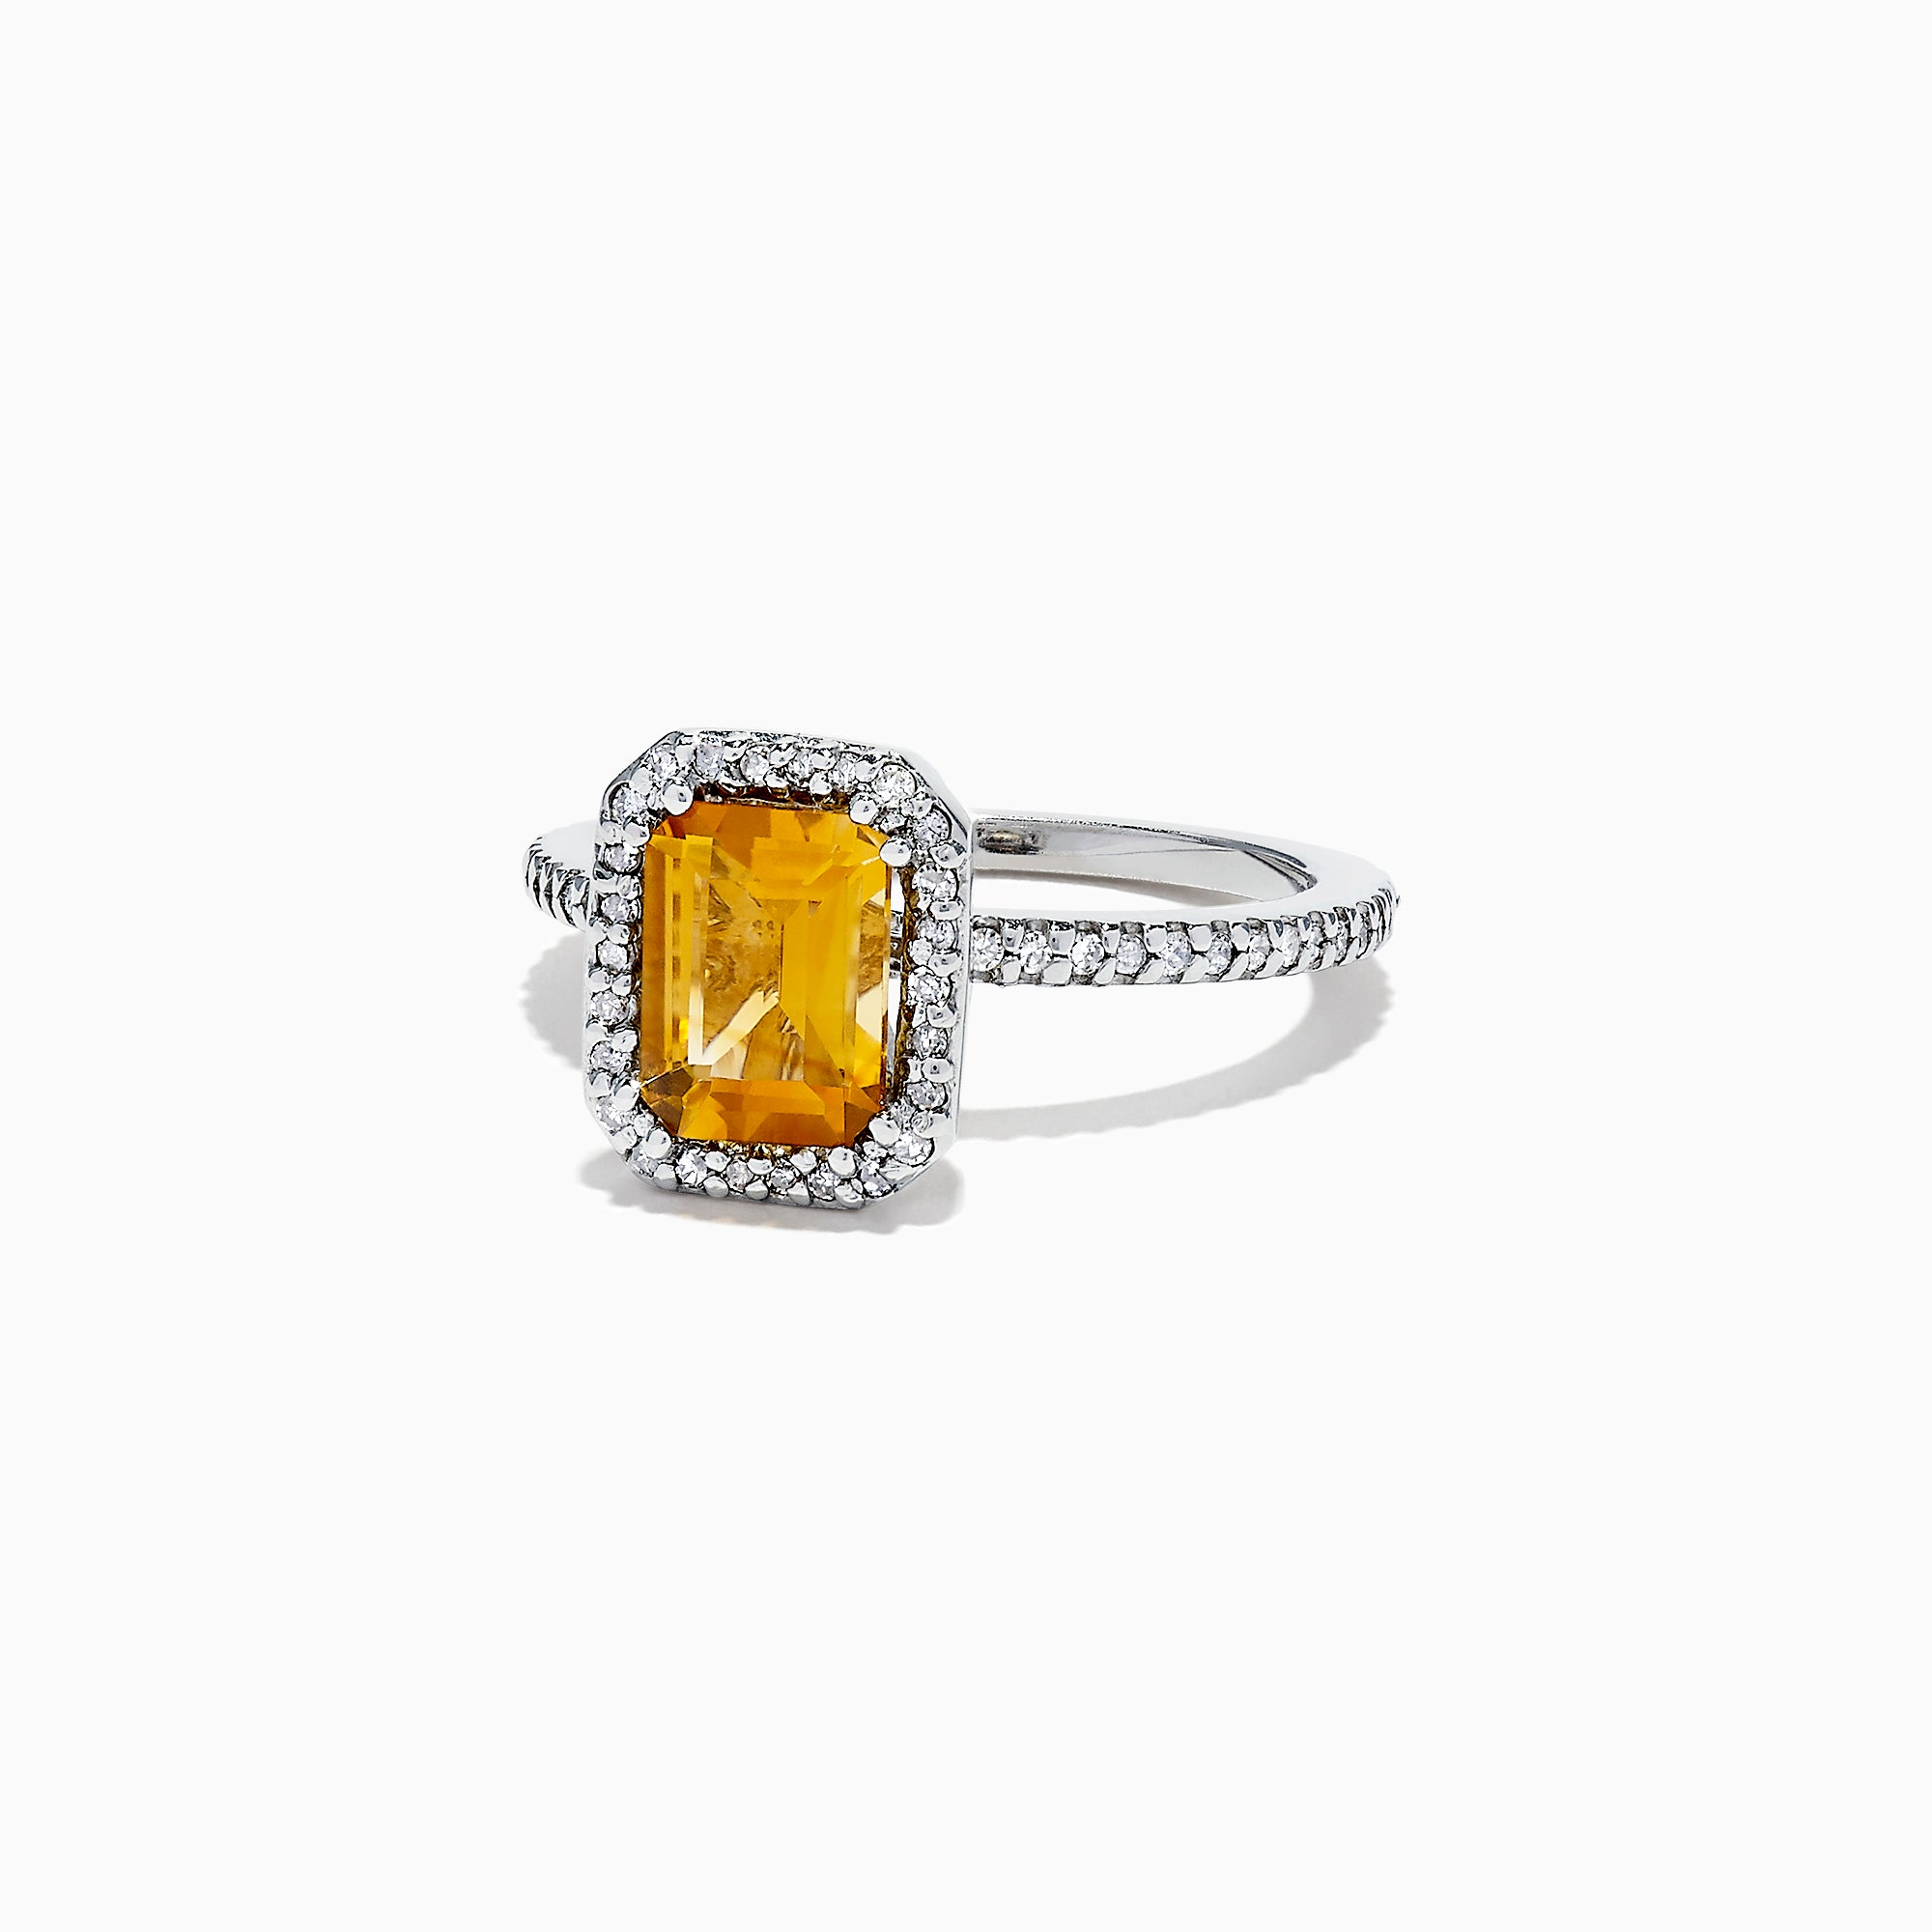 Effy 14K White Gold Citrine and Diamond Ring, 1.68 TCW